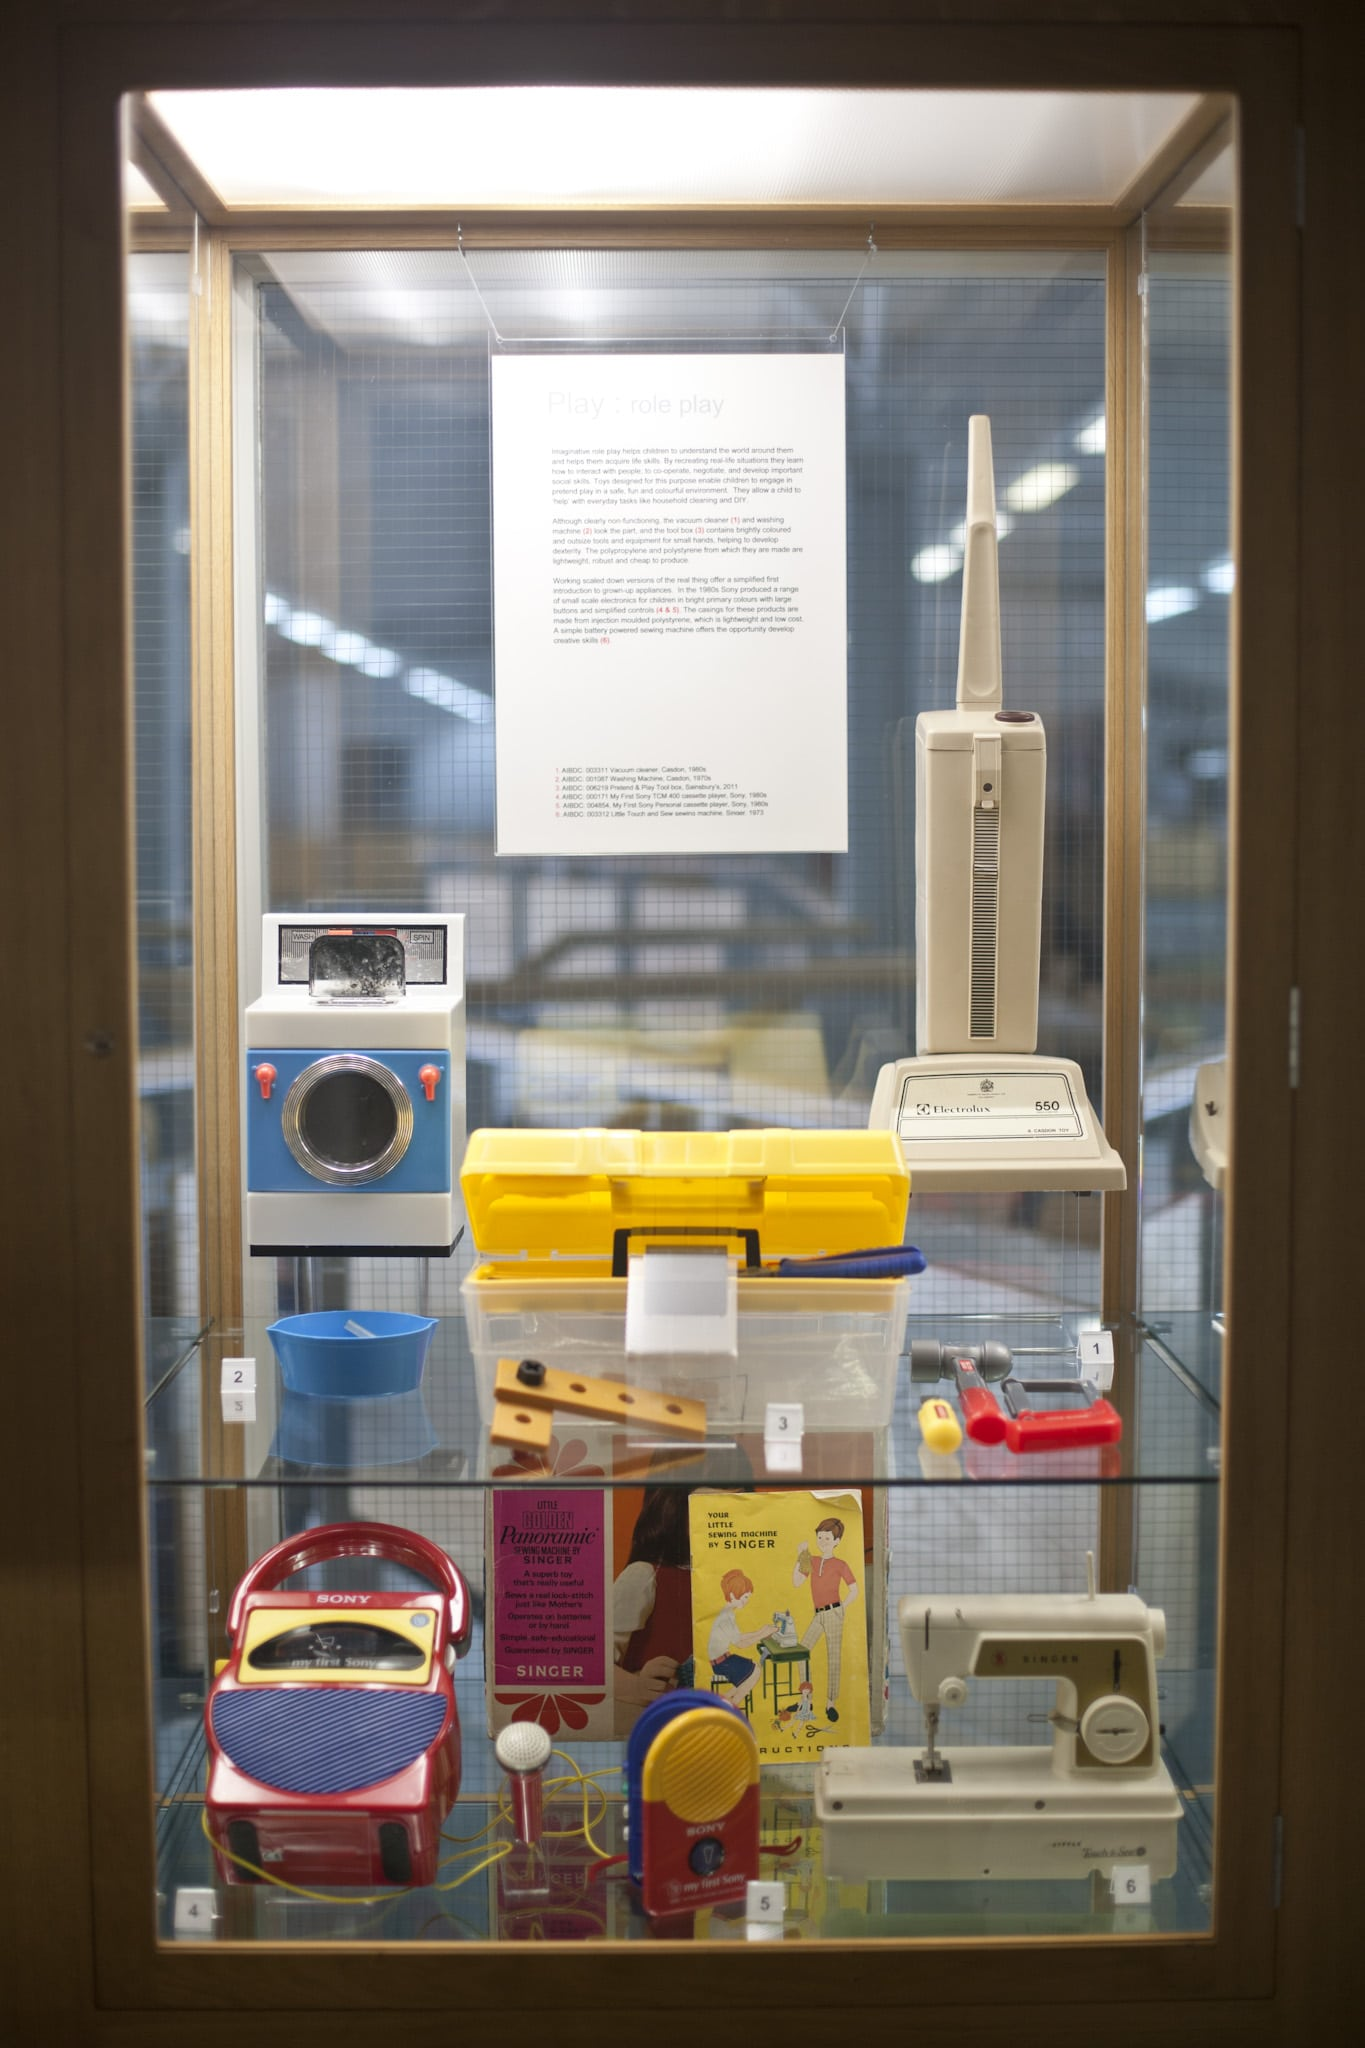 '10 Most Wanted' at the Museum of Design in Plastics